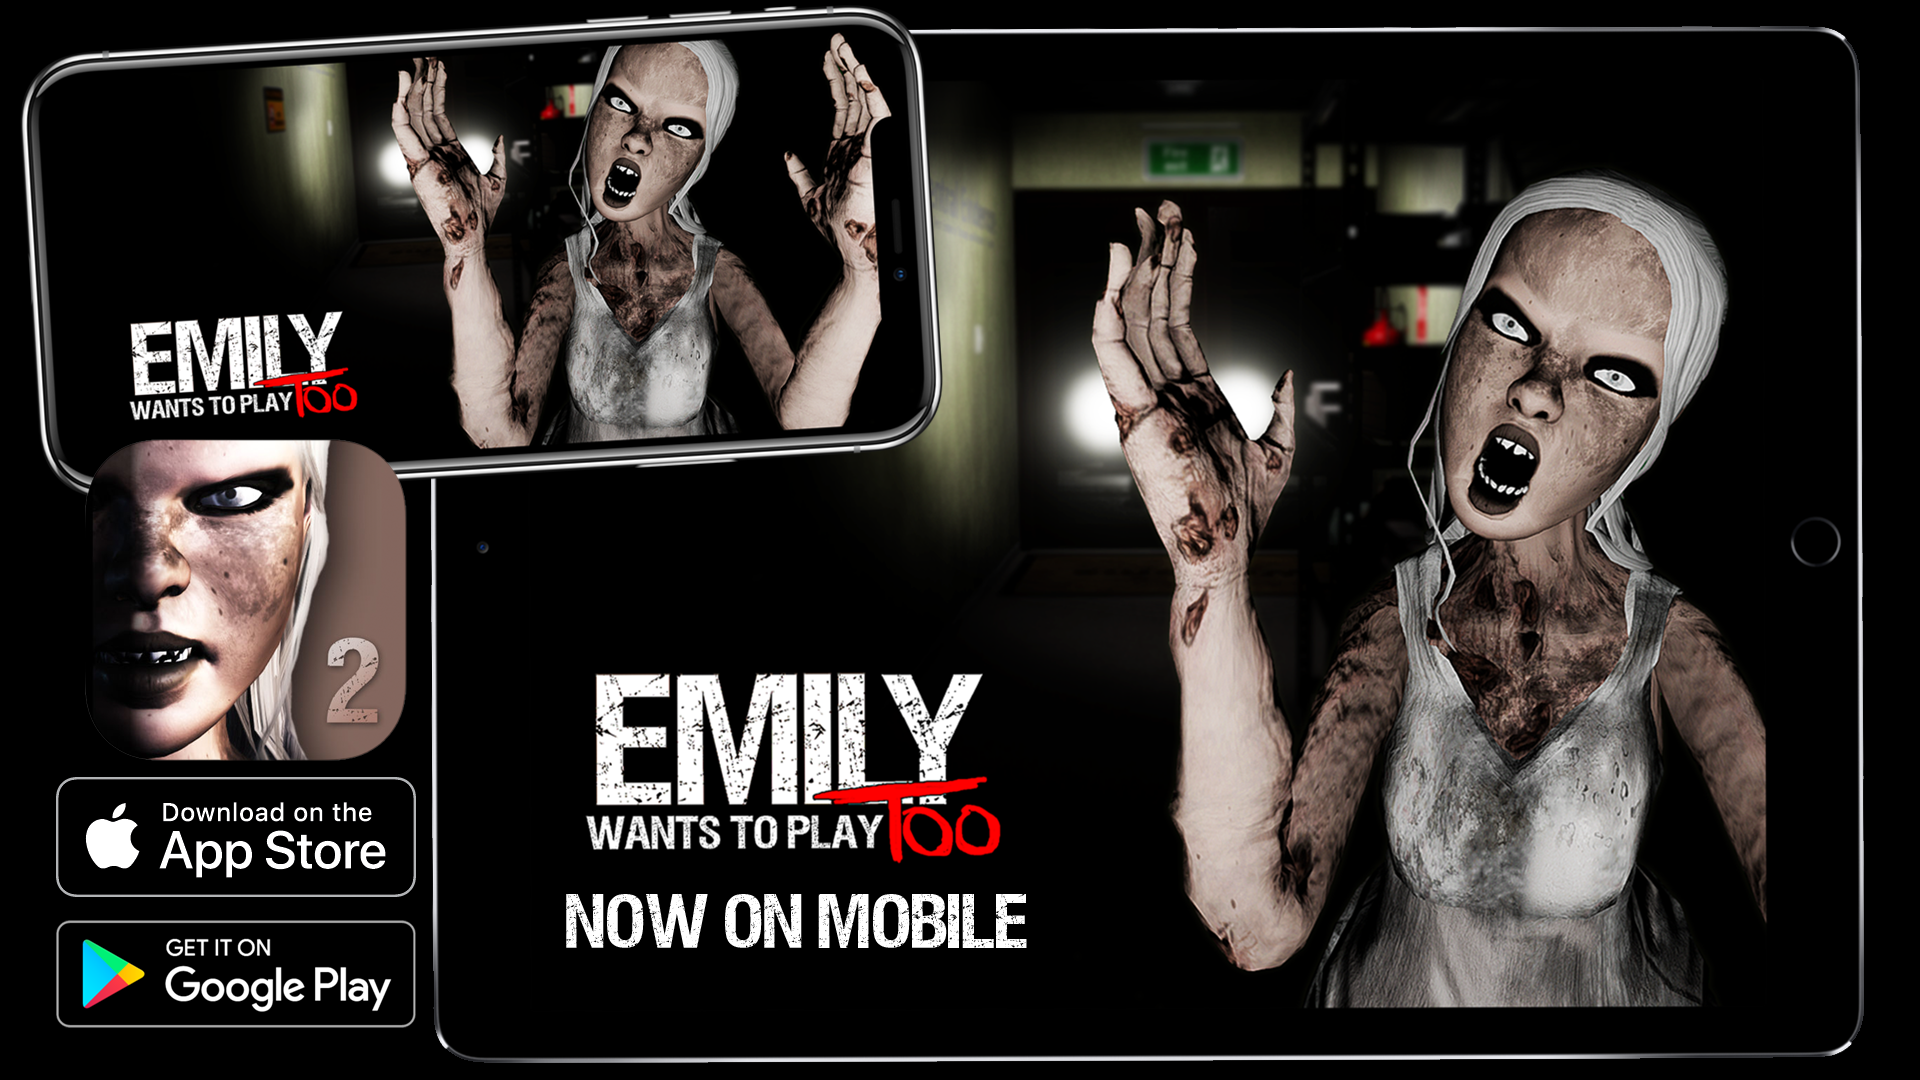 Emily Wants to Play Too is now on mobile.